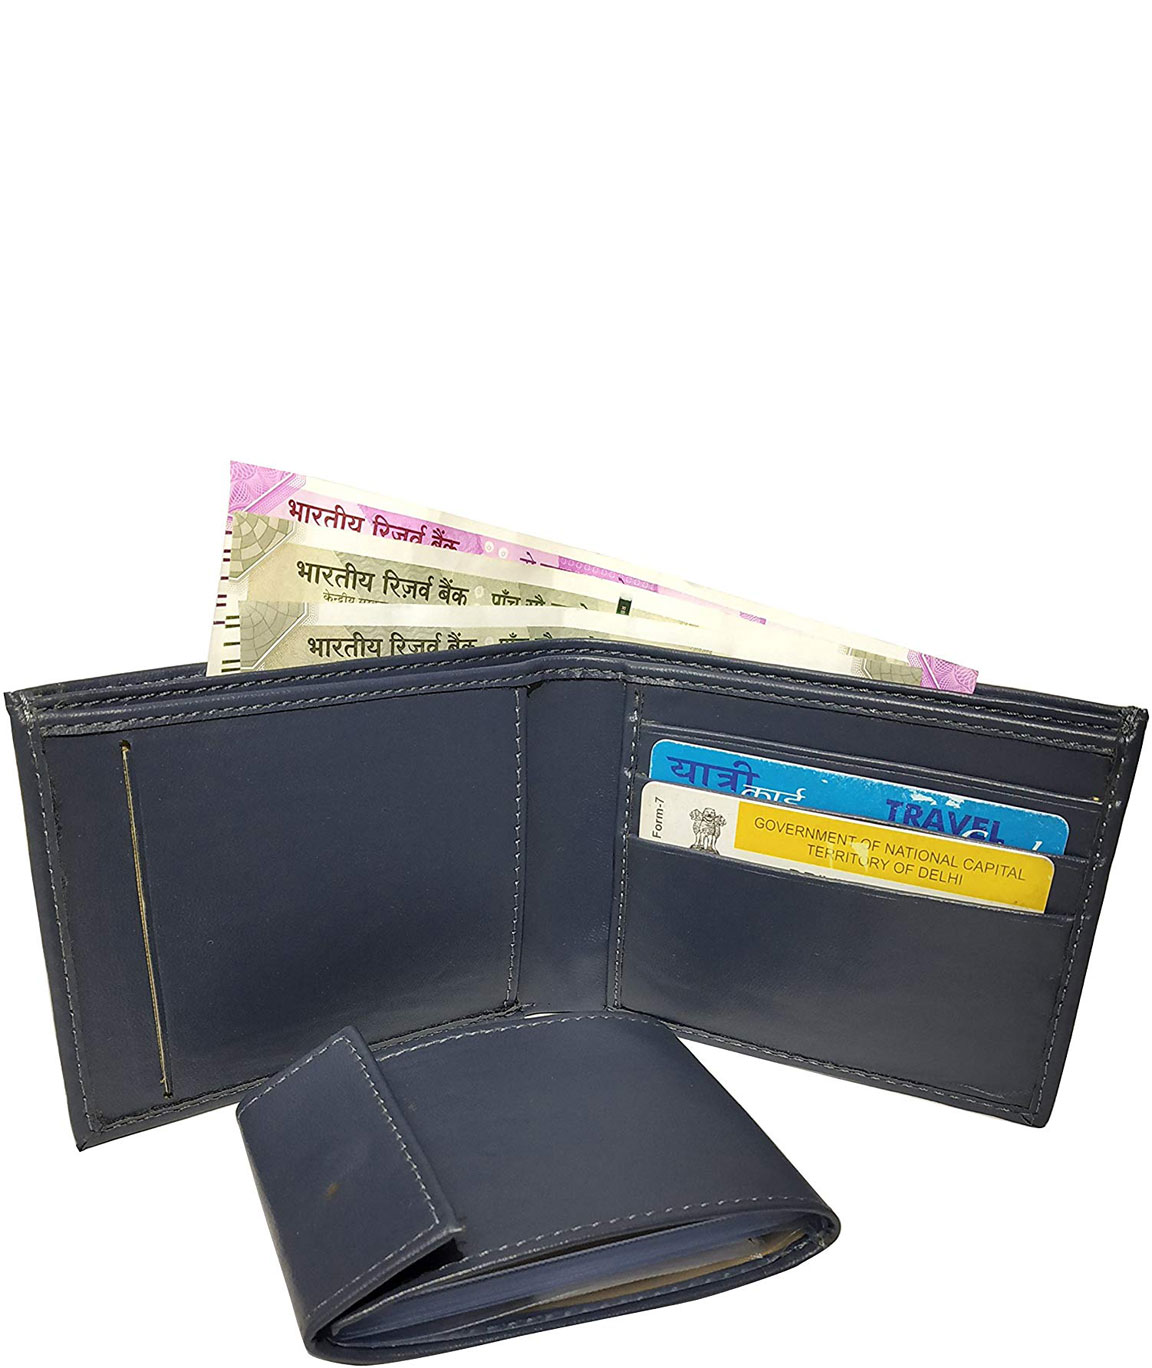 Urban alfami Purse for Men Gents Wallet, with Removable Card Album